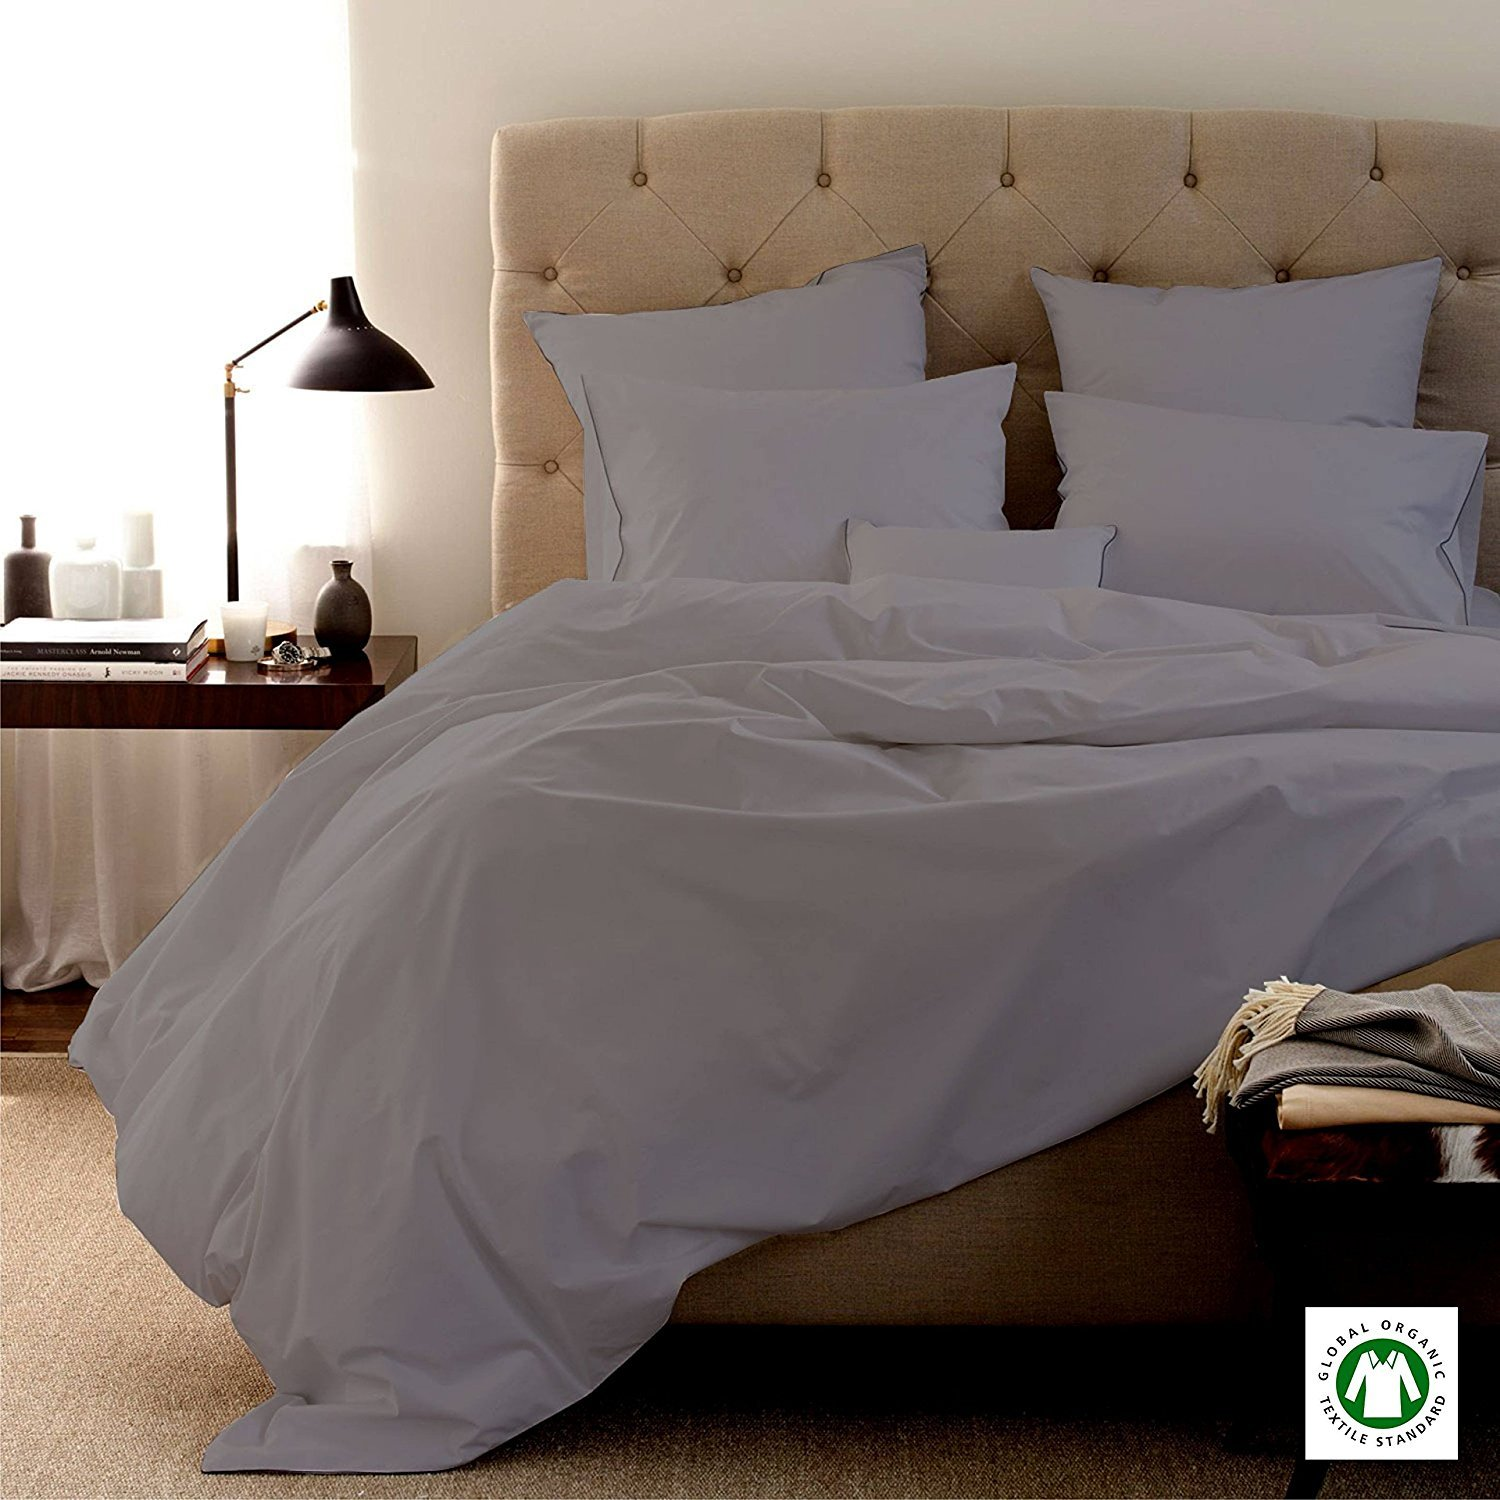 """Luxurious & Genuine Quality 600 TC Bedding Collection 100% GOTS Certified Organic Cotton 4 PC Sheet Set with 15"""" Deep Pocket Ultra Soft Cozy Italian Finish Solid by BEDDING HOMES(Full, Silver Grey)"""